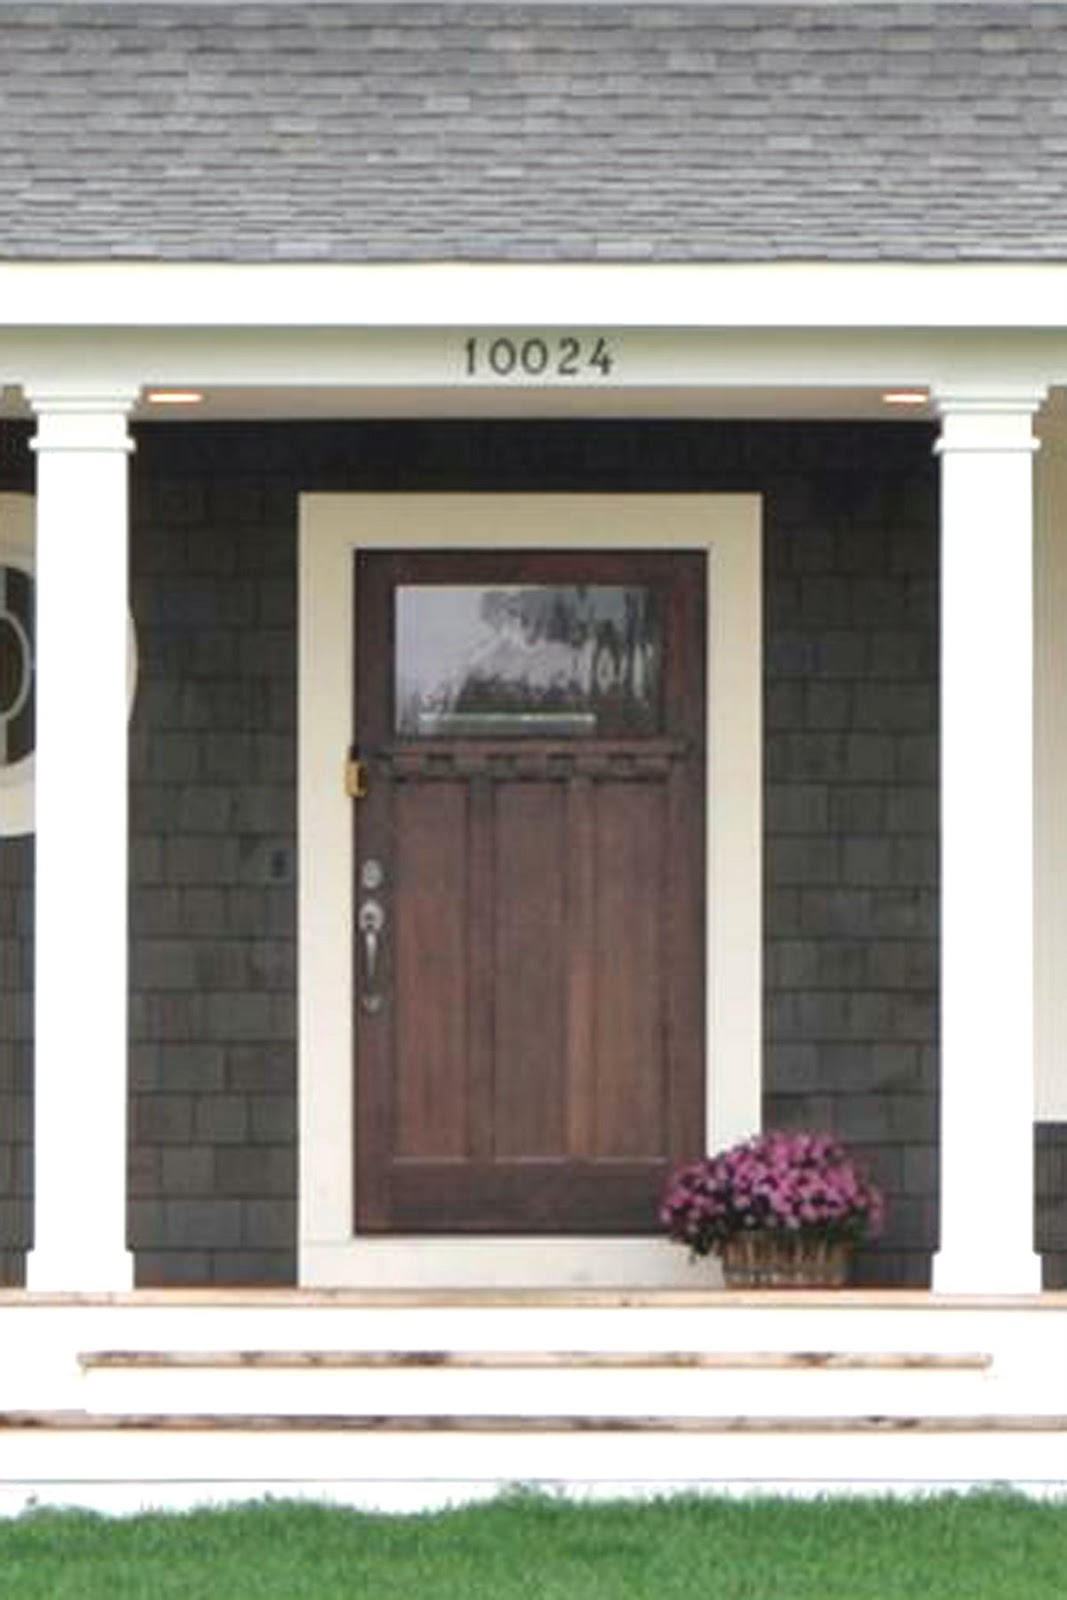 1600 #507647 Front Doors On Pinterest Cape Cod Yellow Doors And Porticos picture/photo Front Doors Pictures 40791067